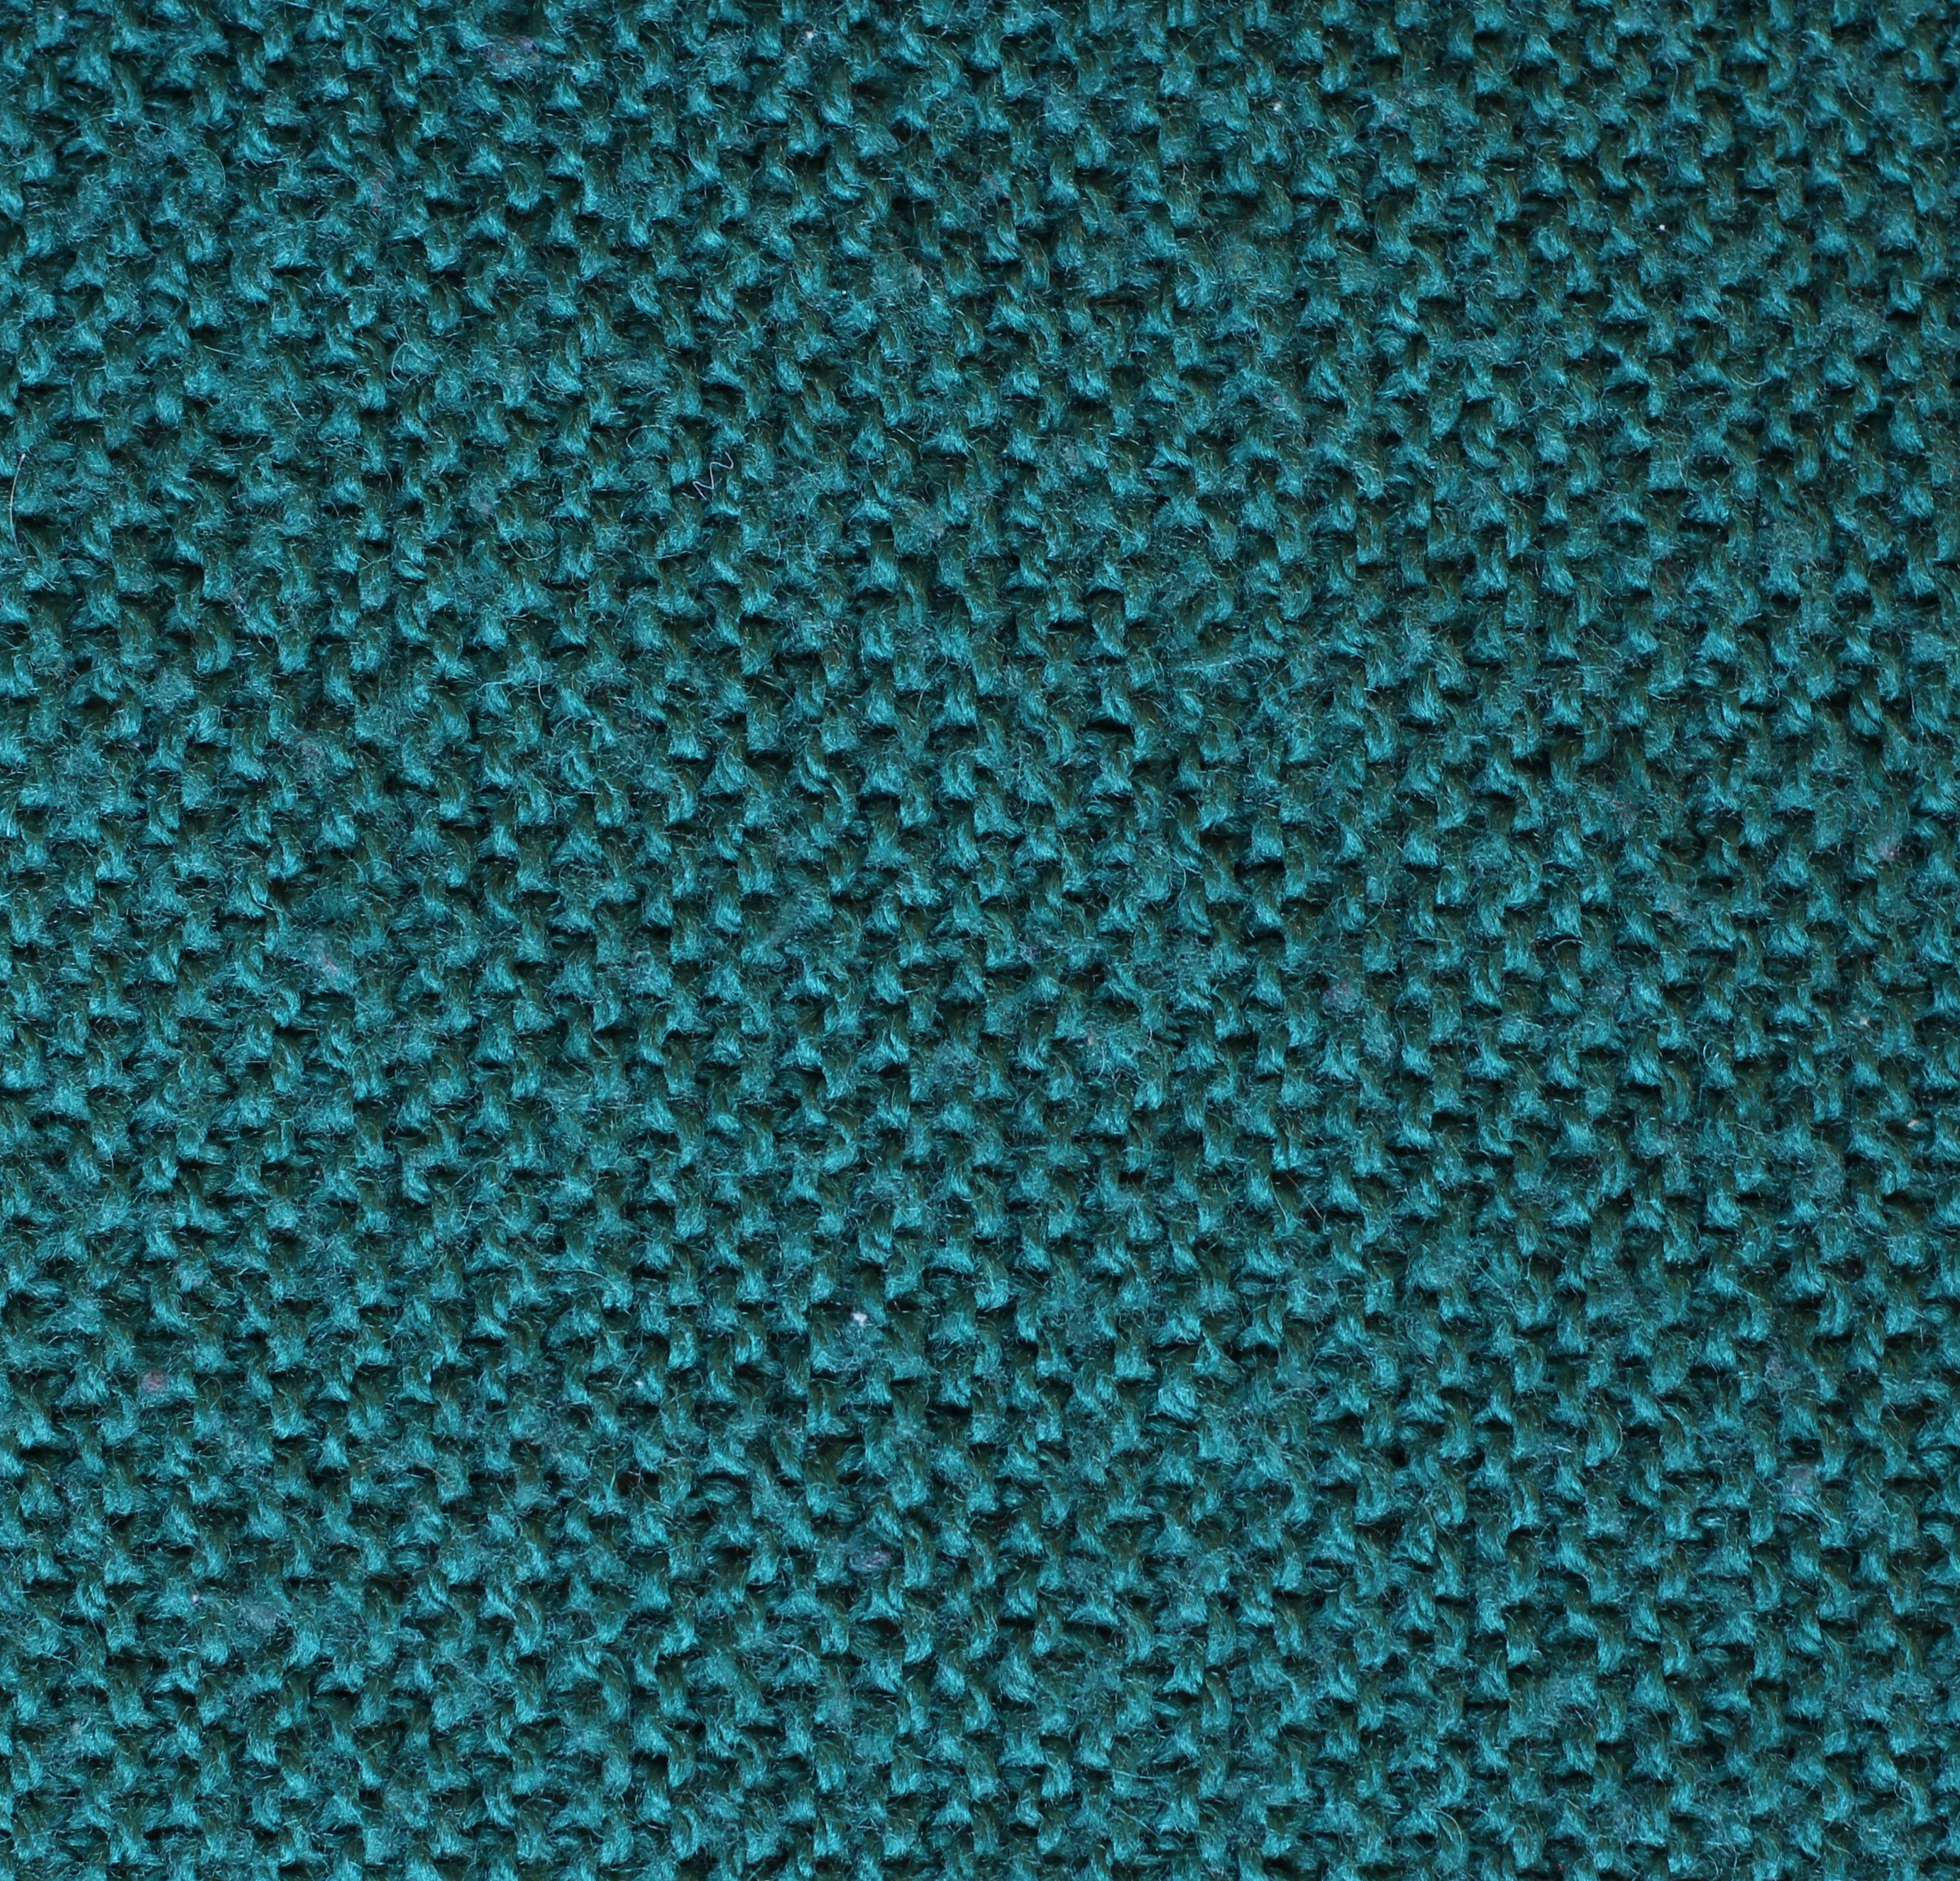 Blue, Wool 7x9 - 10x14 Rugs: Use large area rugs to bring a new mood to an old room or to plan your decor around a rug you love. janydo.ml - Your Online Area Rugs Store! Get .